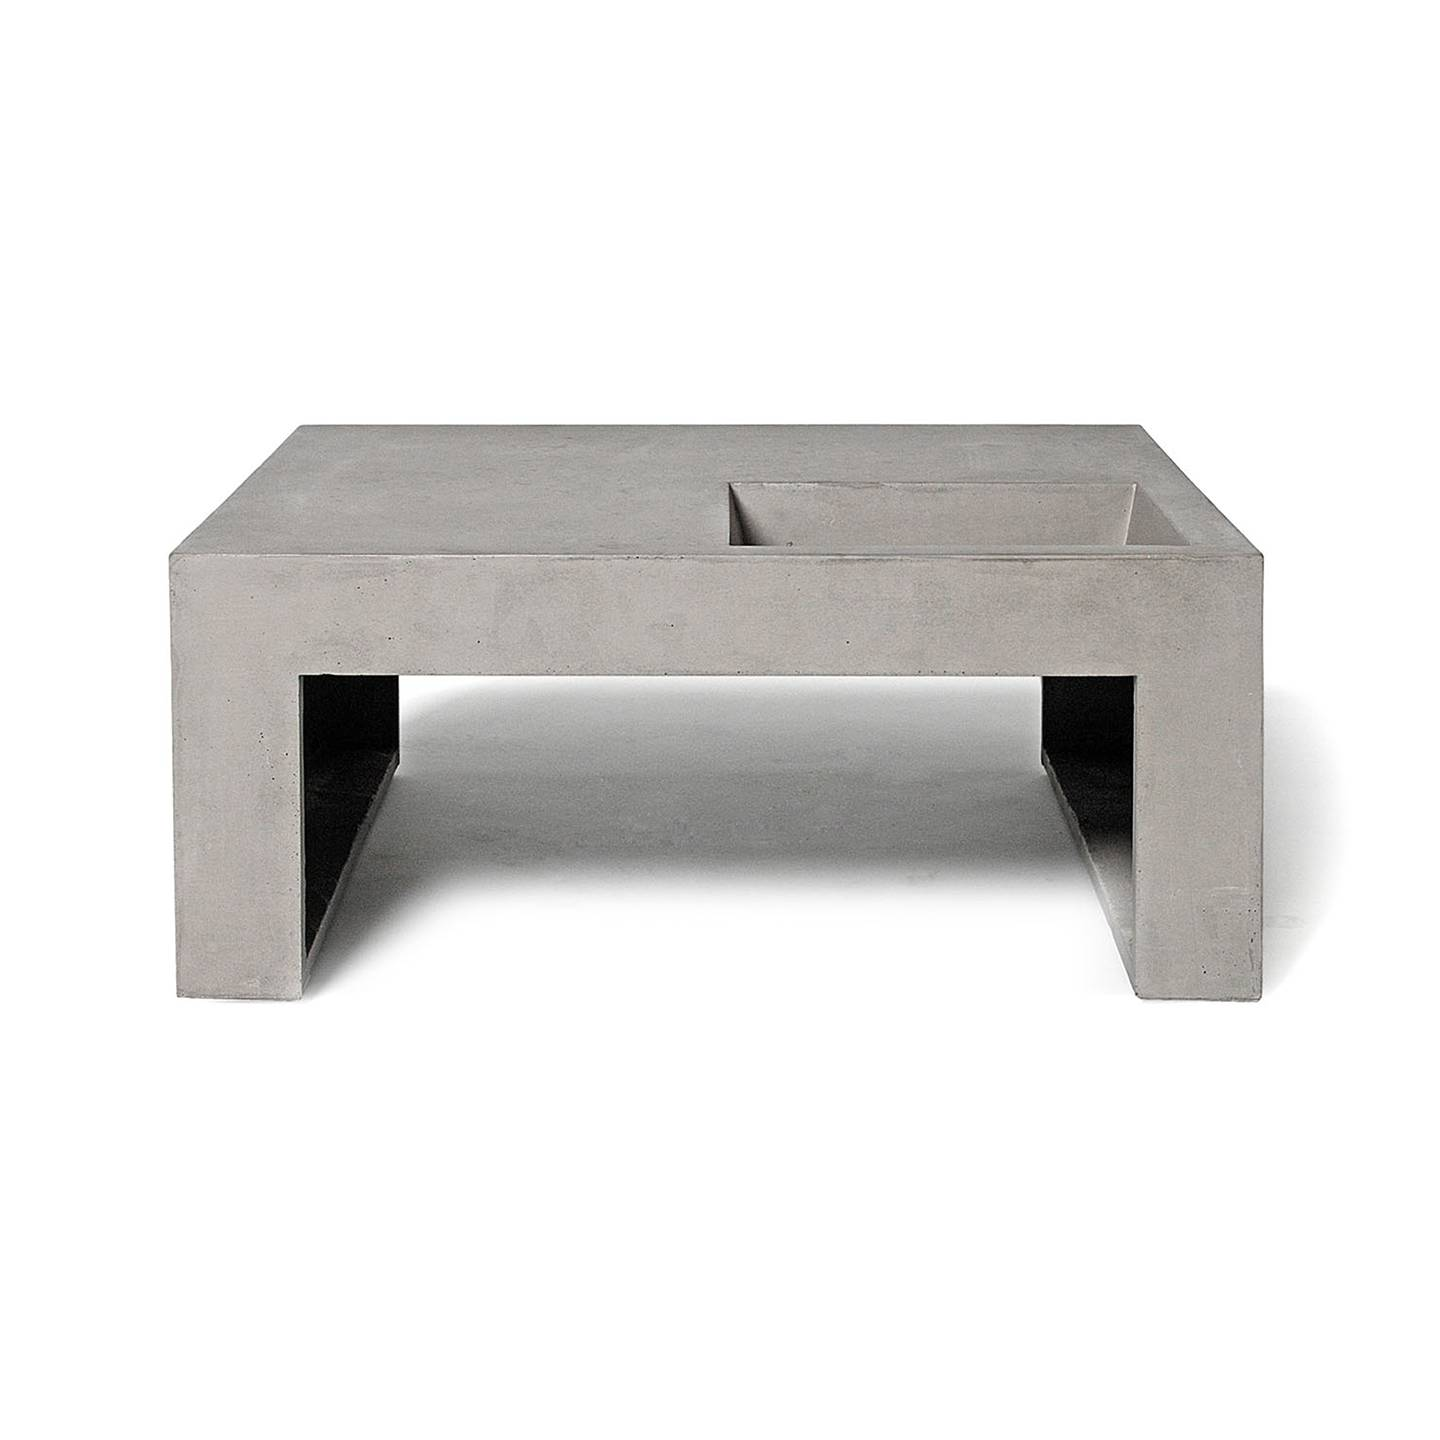 low coffee table modern contemporary accent tables furniture stylish concrete concepts sofa end with storage round mirrored nightstand carpet edge strip patio beverage cooler